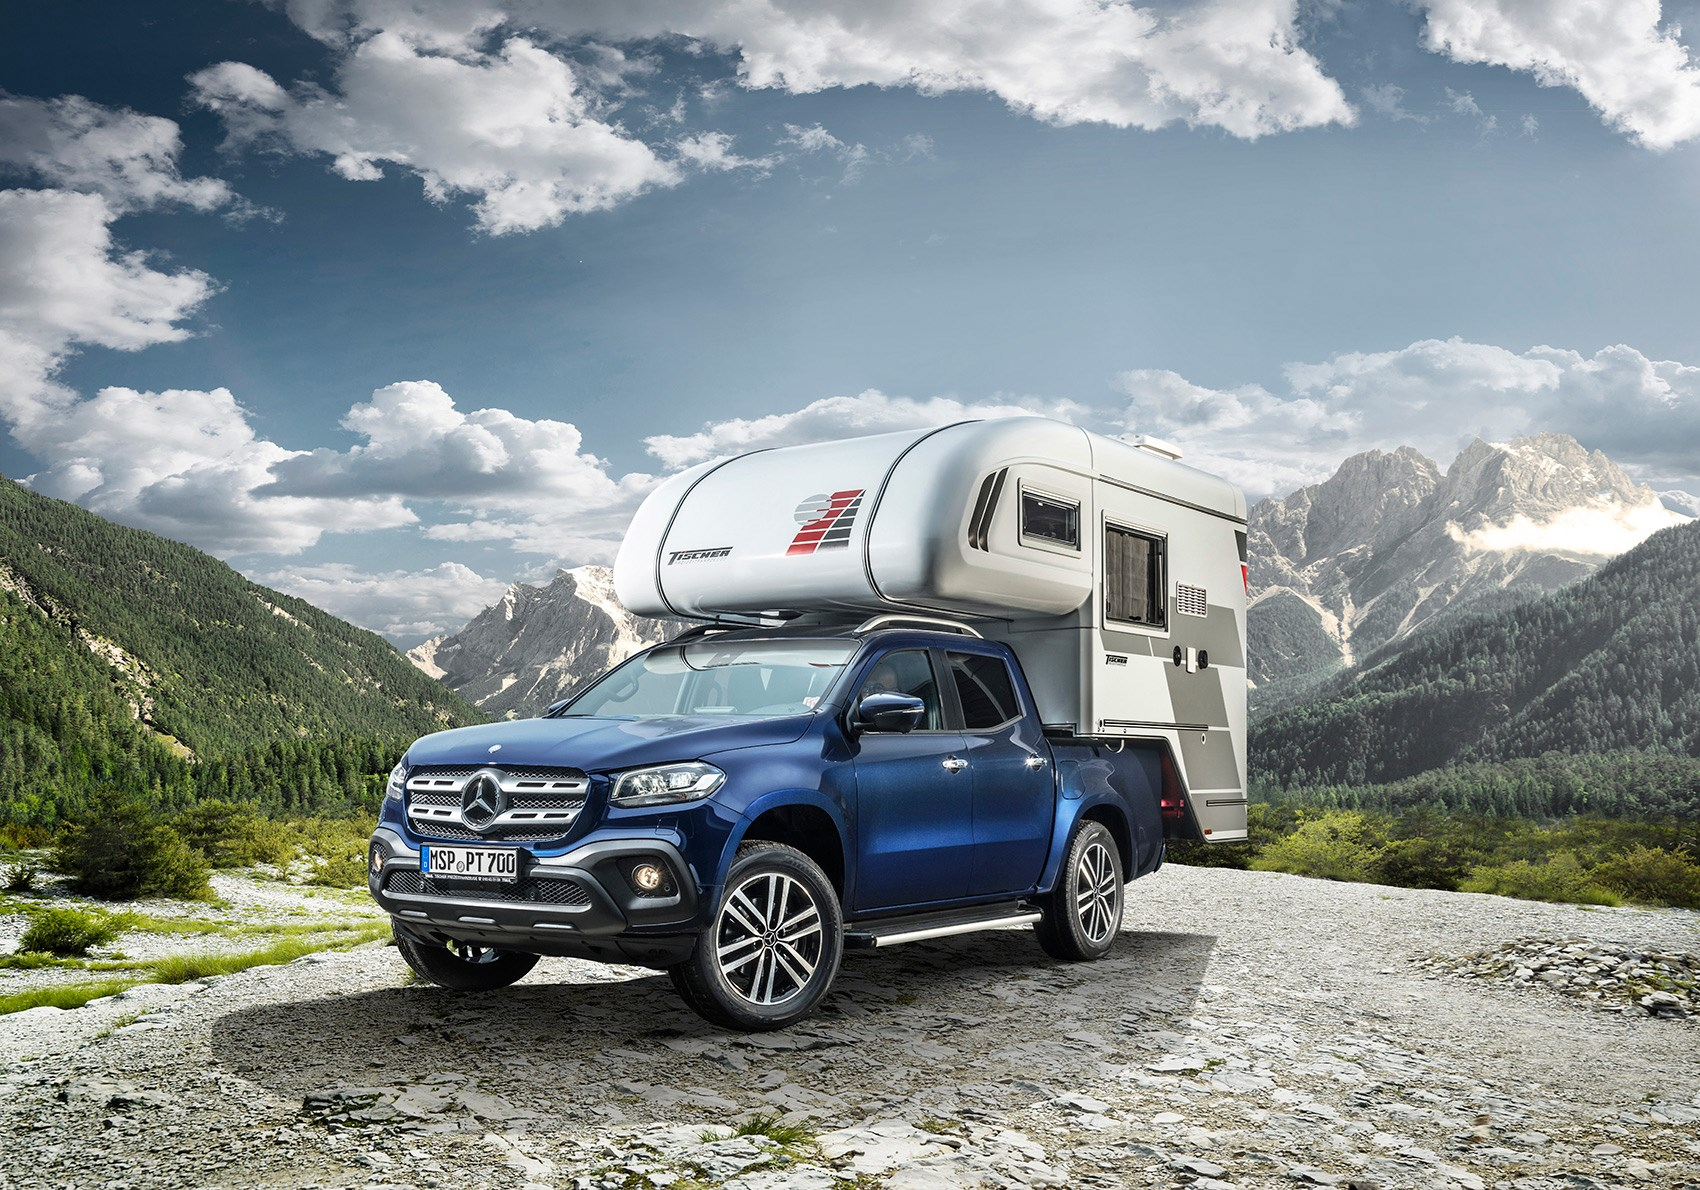 Mb X? S? Mercedes Benz X Class Pick Up Camper Van Pictures Specs